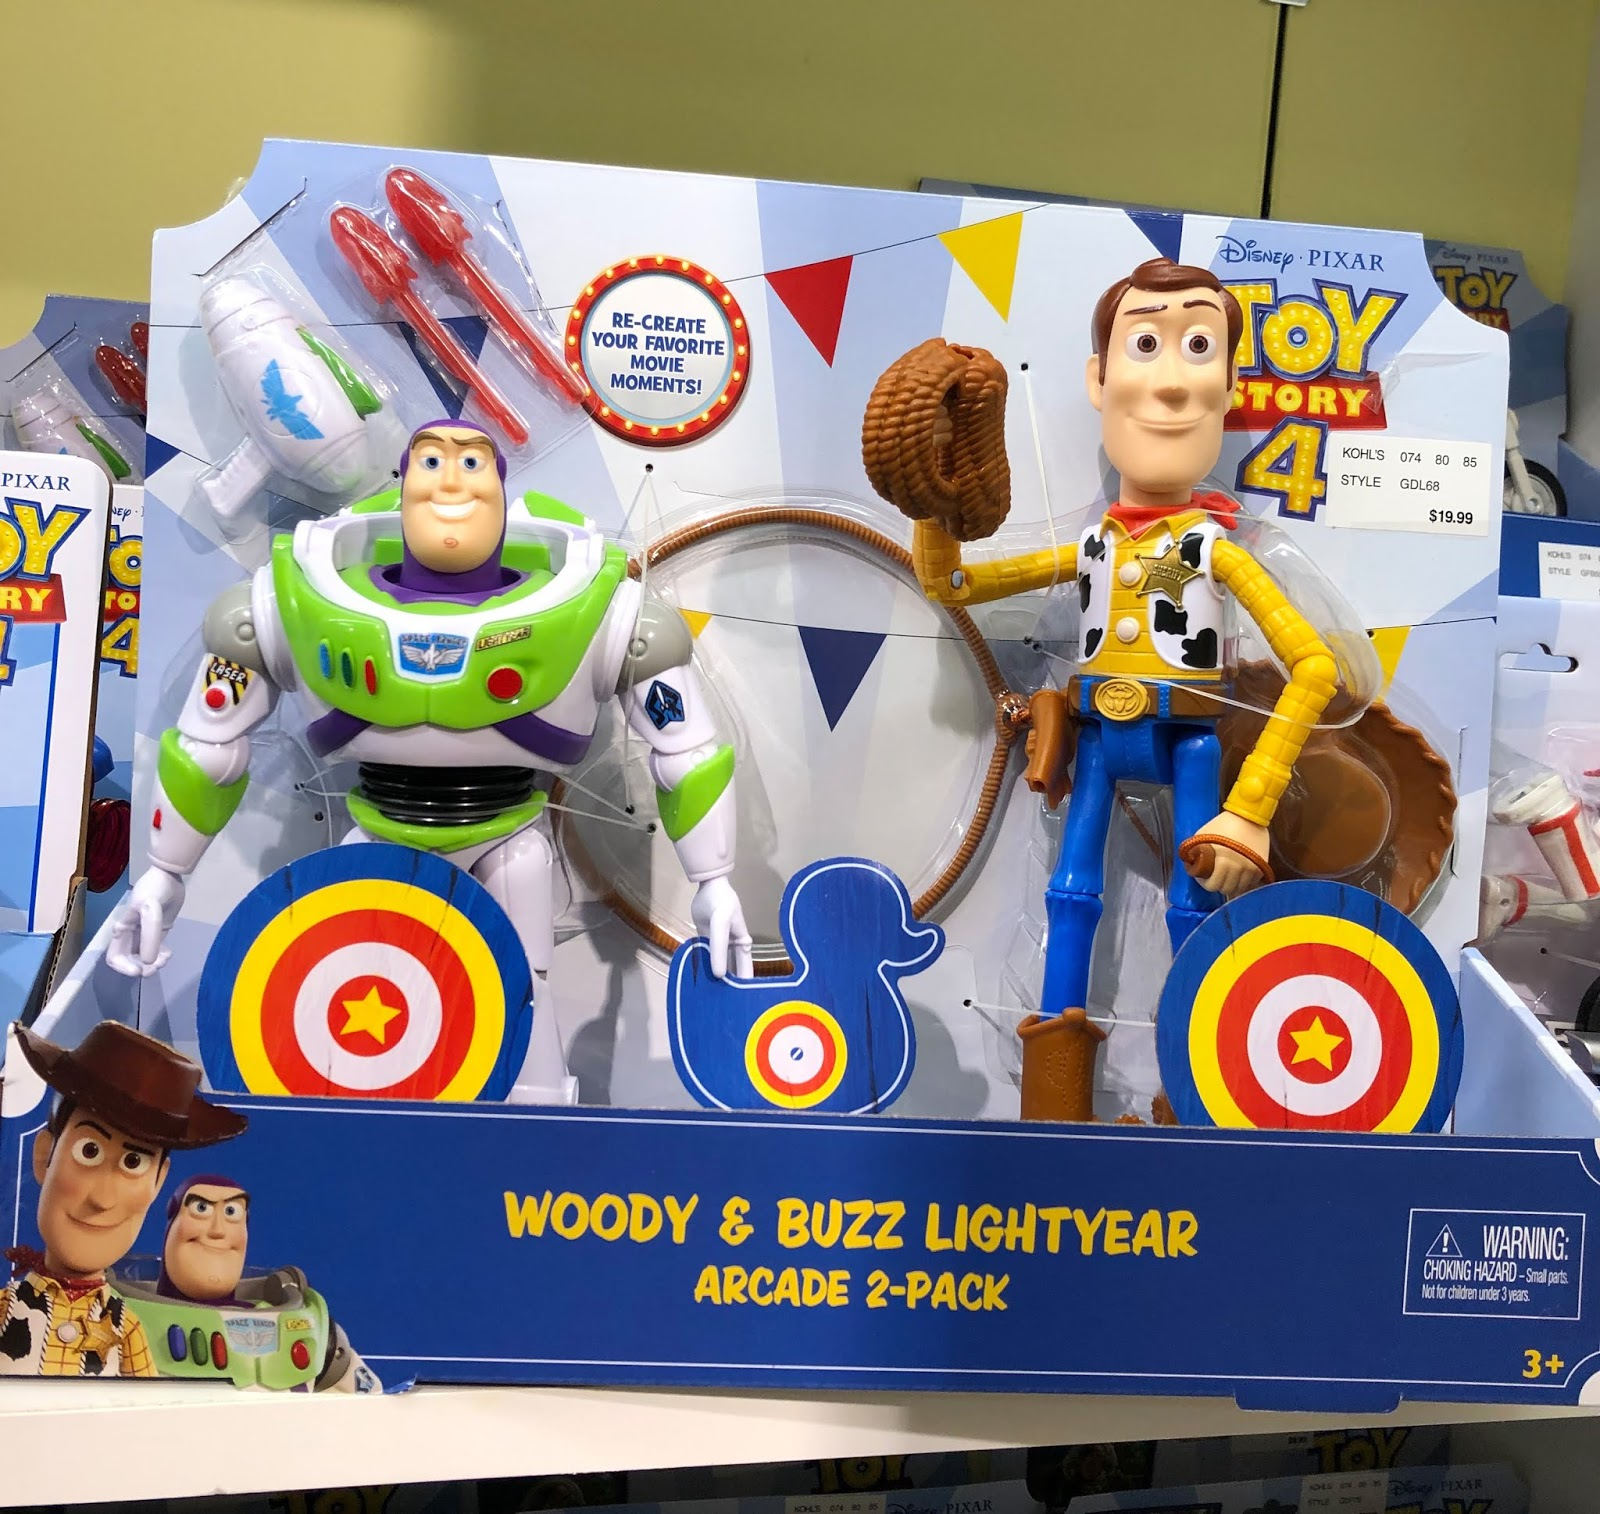 toy story 4 woody and buzz arcade 2-pack